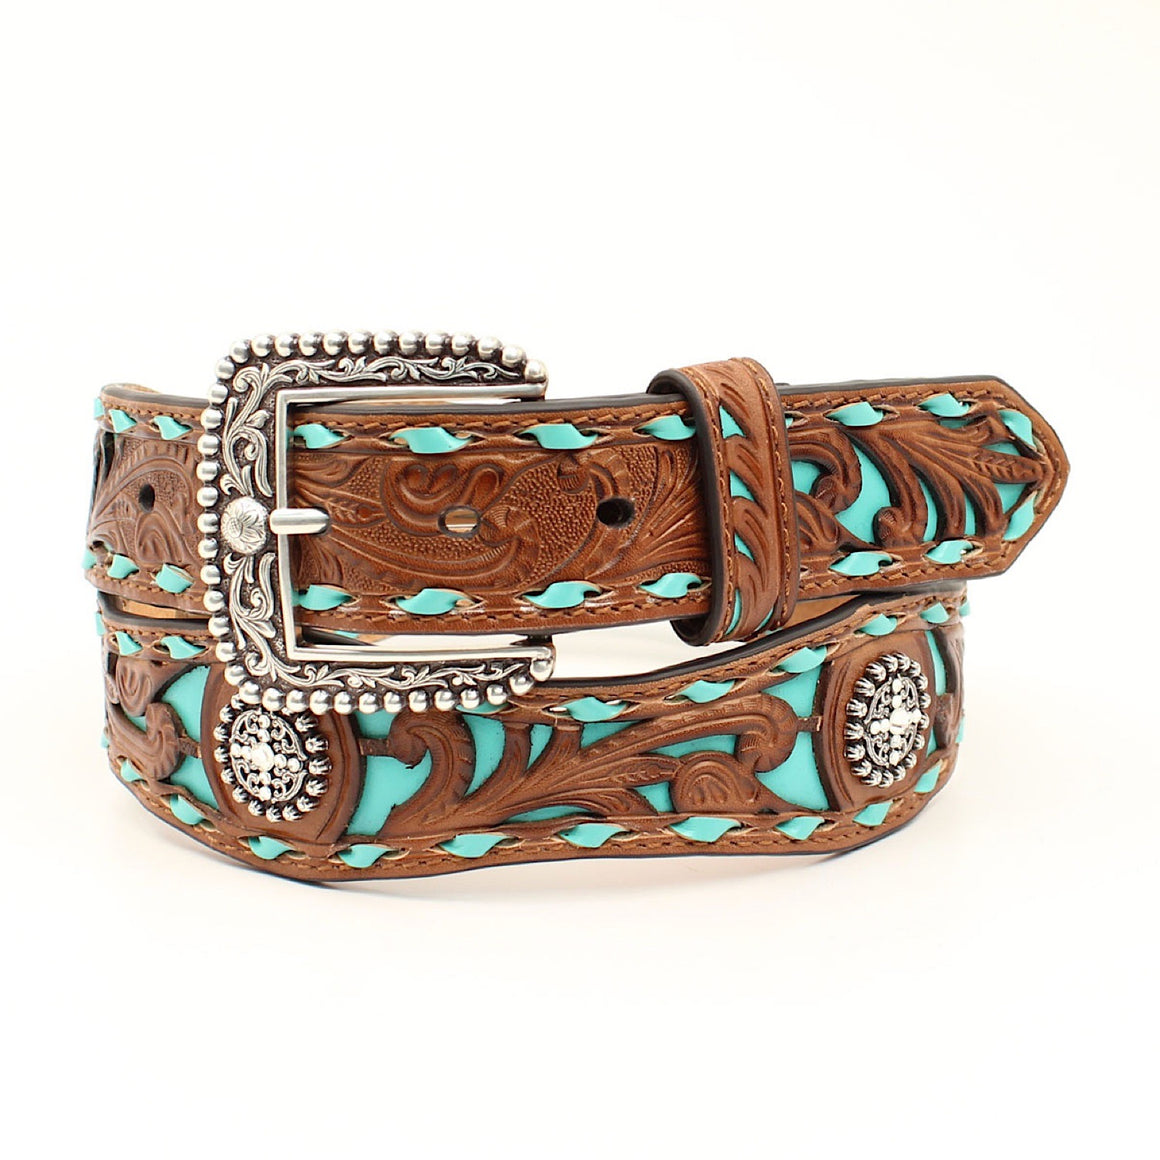 Ariat Womens Western Belt Dark Tan /Turquoise